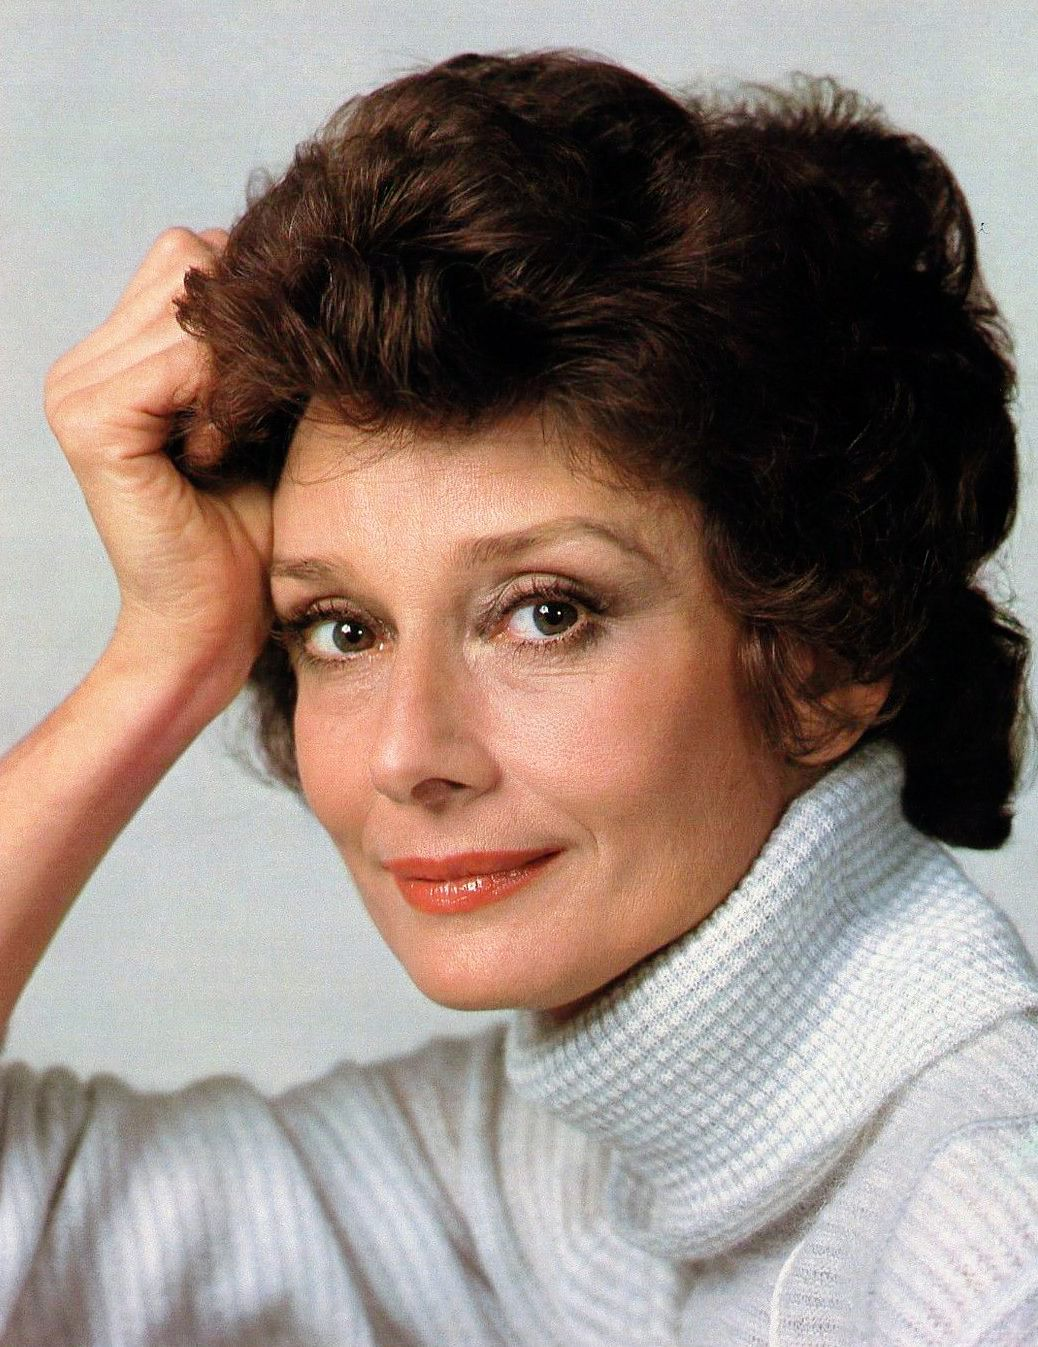 Audrey Hepburn photographed by Sergio Strizzi for the film Bloodline, Paris, February 1979.